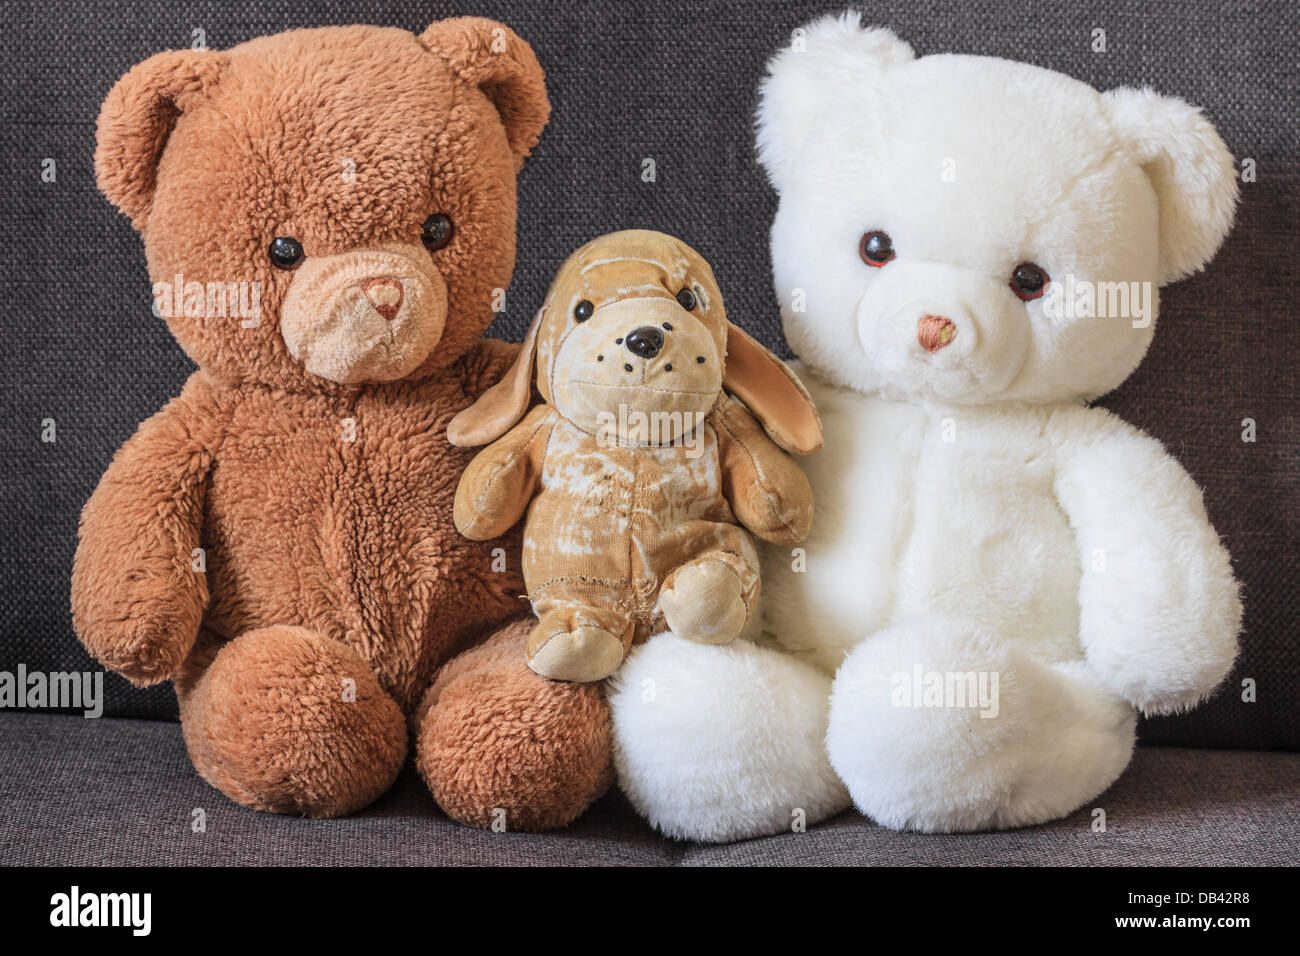 Cute old teddy bears and dog on couch (three) - Stock Image